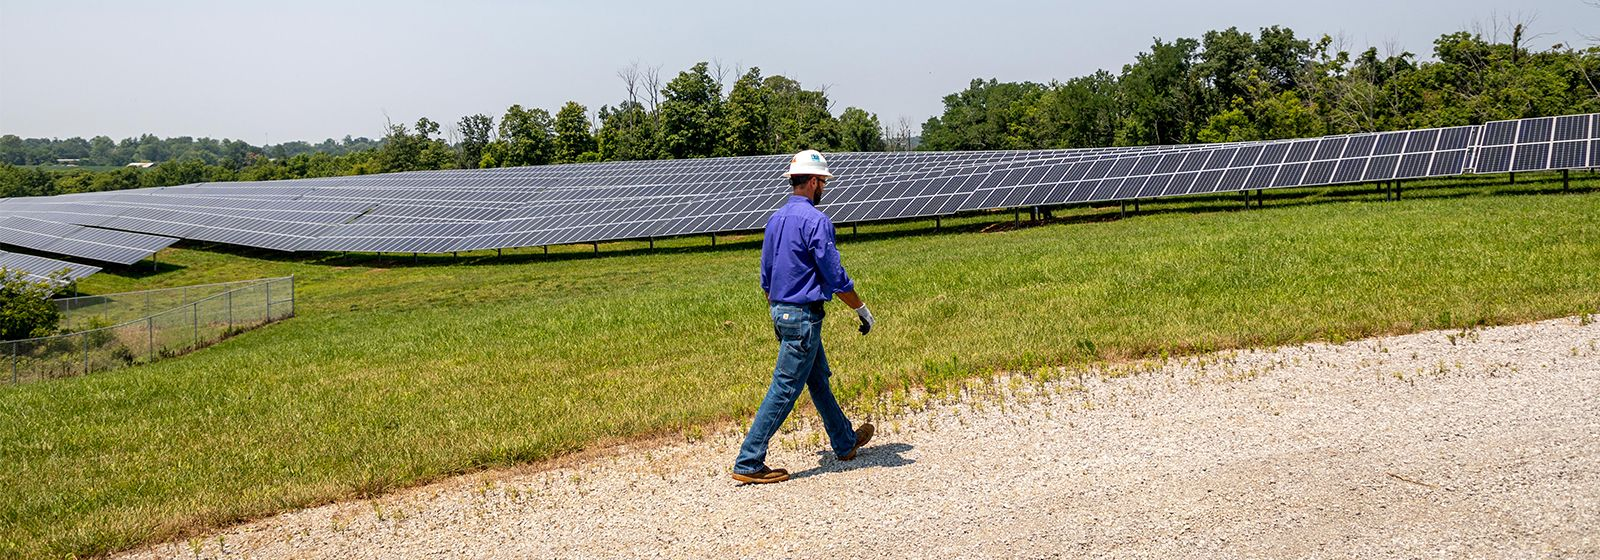 Power plant workers embrace change as industry adds renewable energy